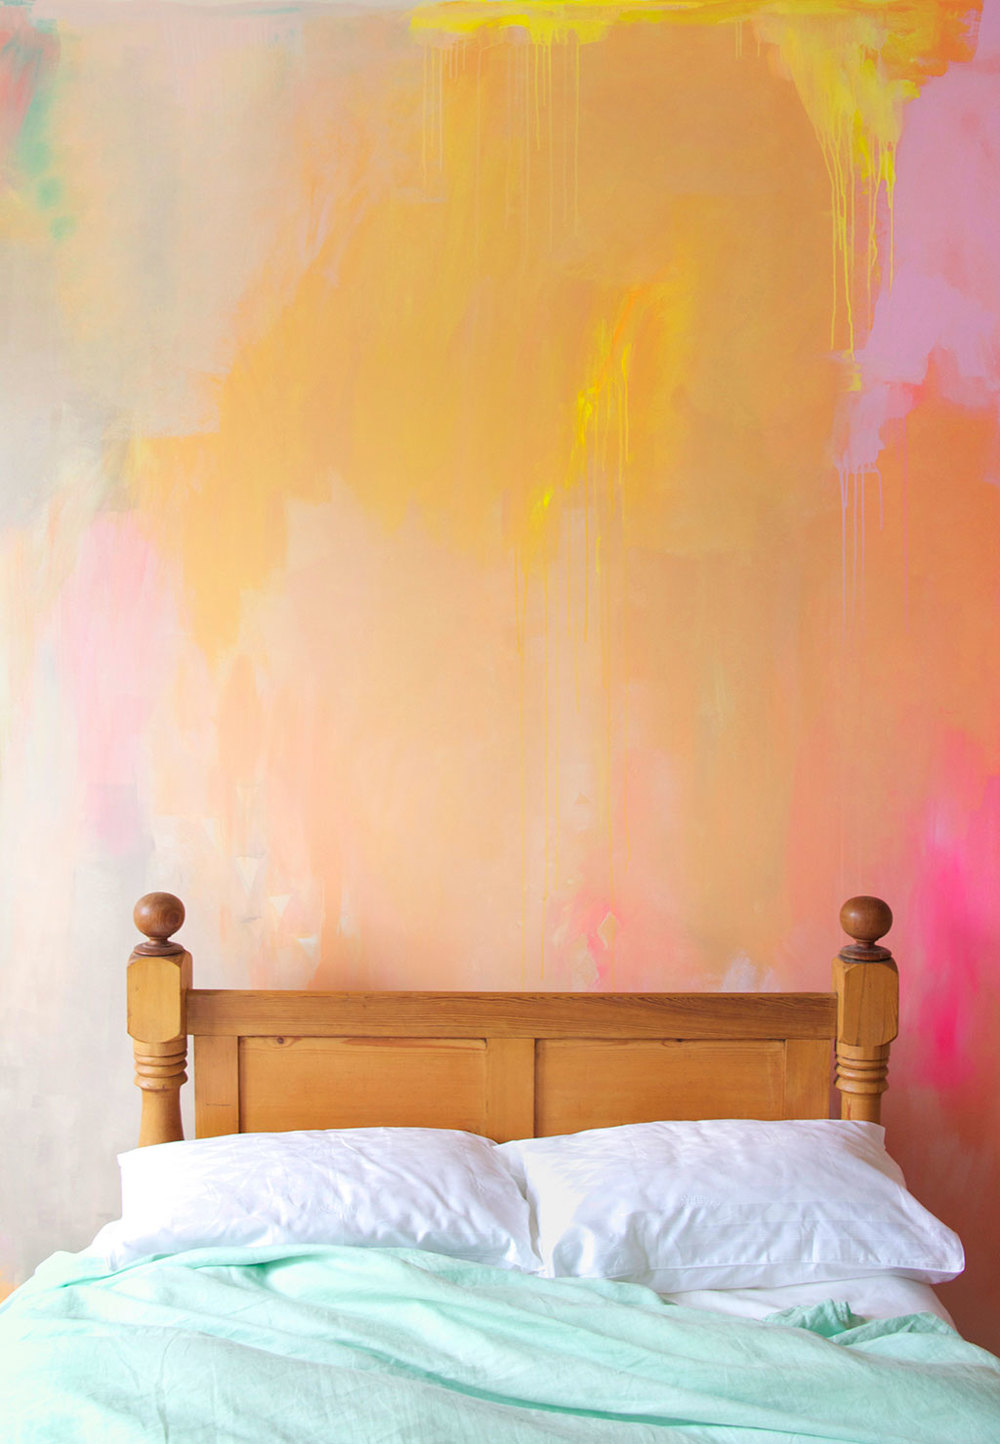 Bright, happy styled bedroom with painted abstract mural in earthy summer colors of peach, coral, yellow and pink, featuring mint bed linen and a messily styled bed.